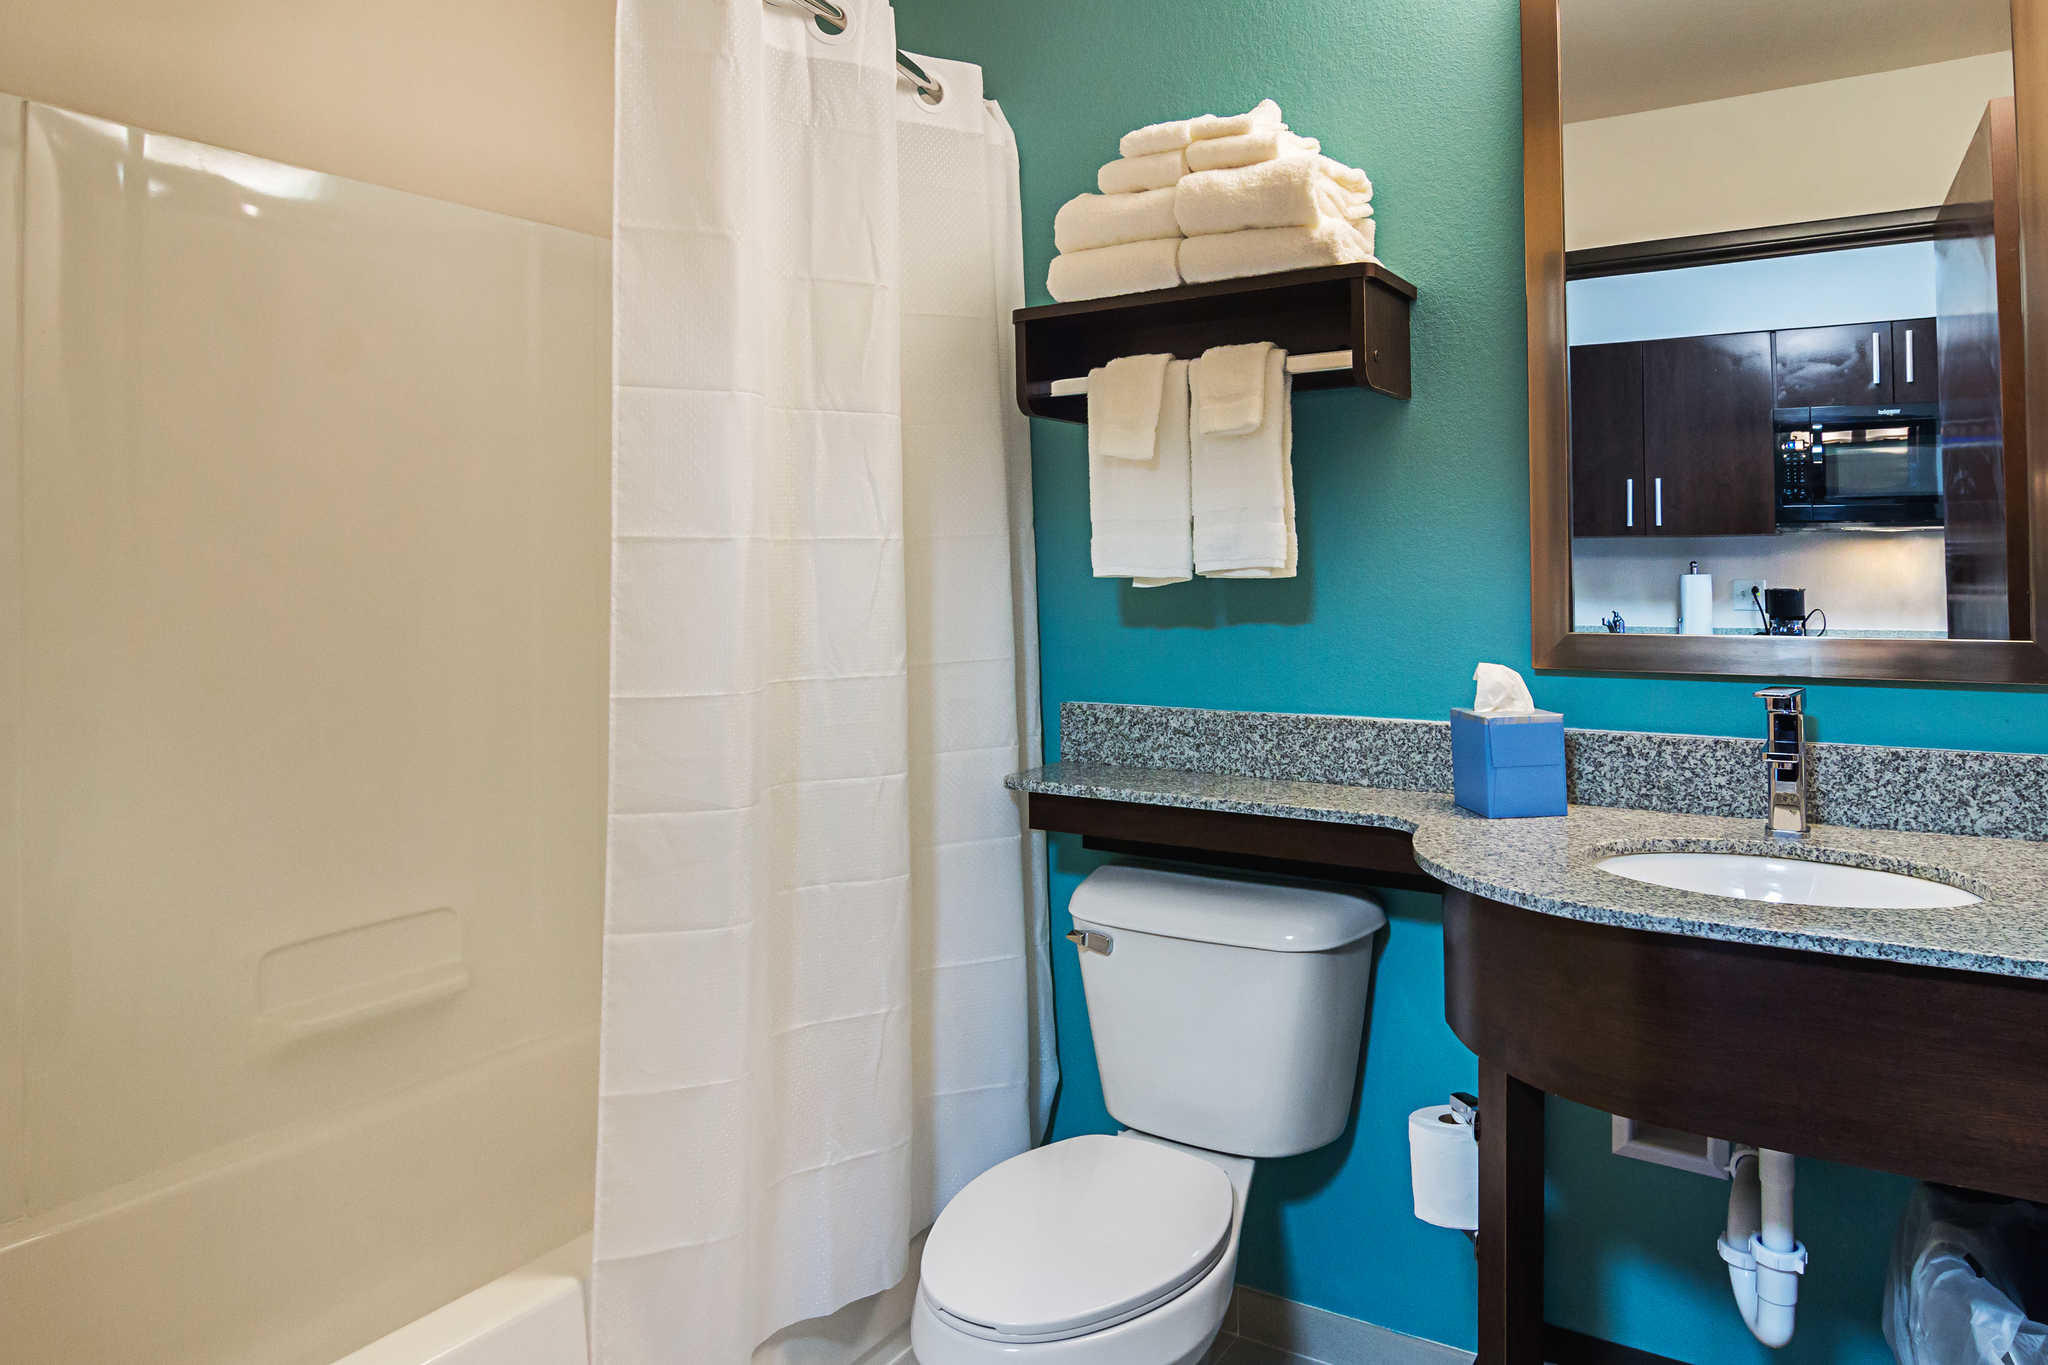 Suburban Extended Stay Hotel image 36